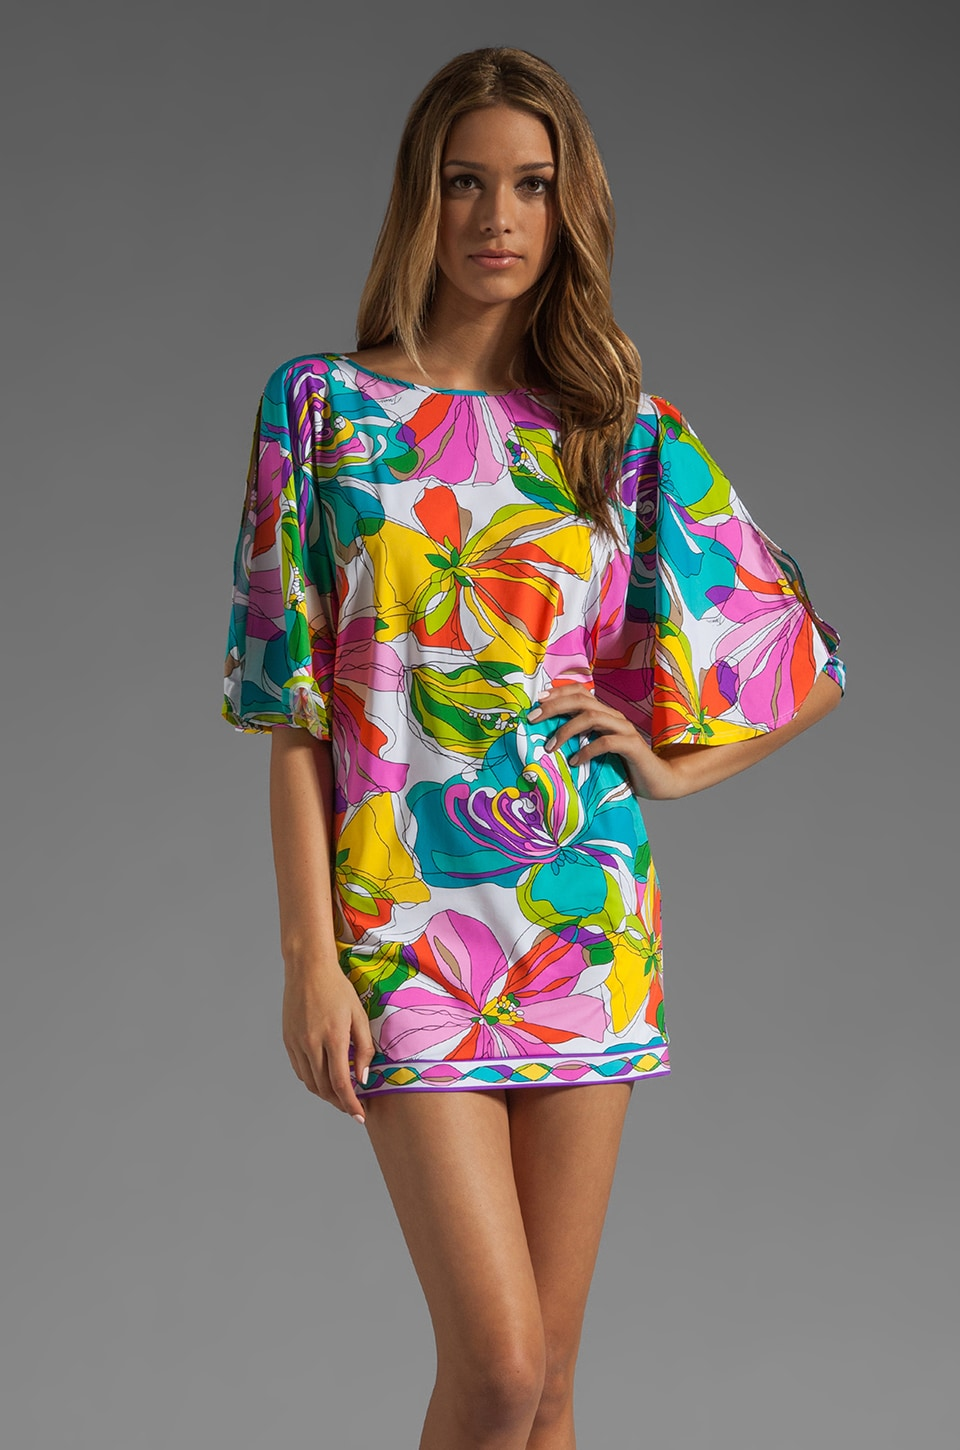 Trina Turk Kaleidoscope Floral Tunic Cover Up in Multi